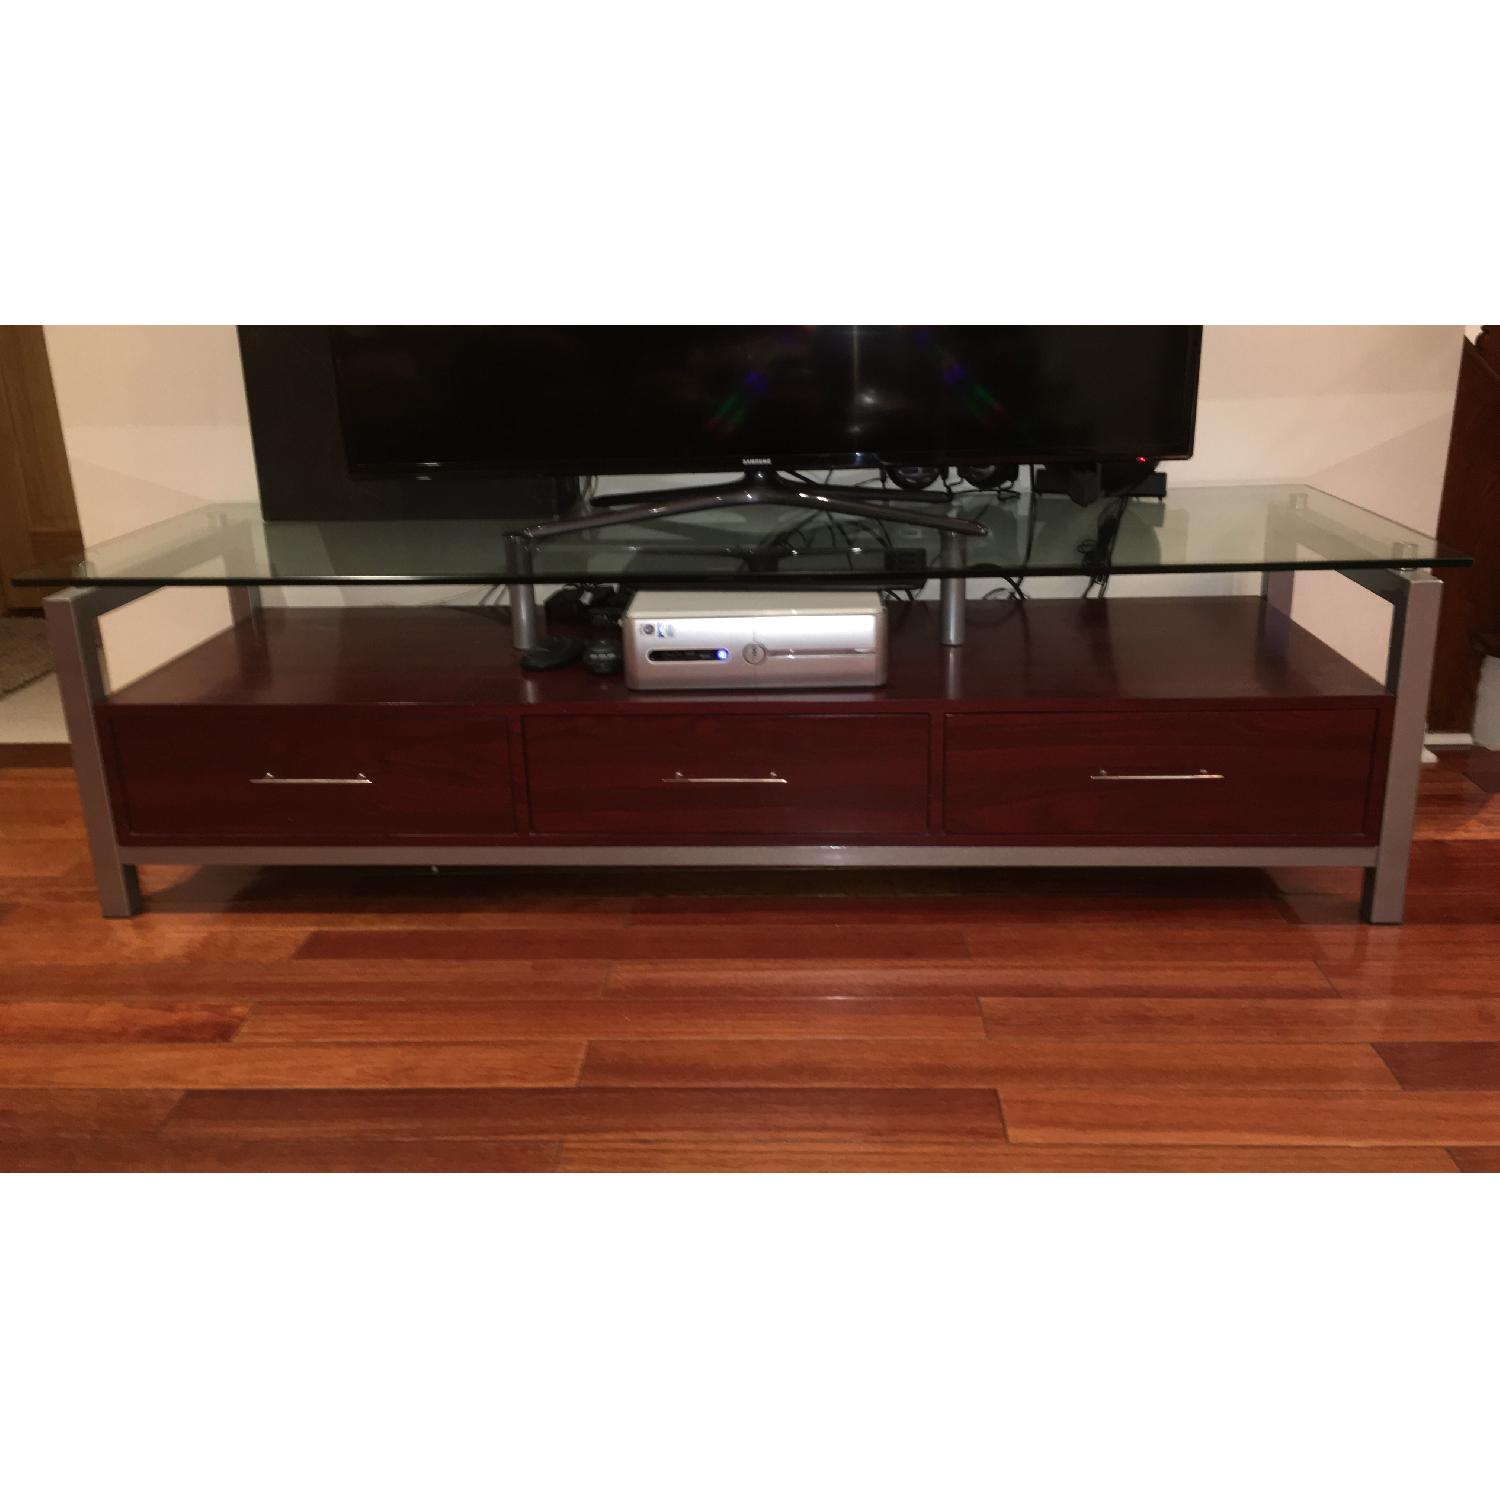 3 Drawer Wooden TV Stand w/ Metal & Glass Top - image-1